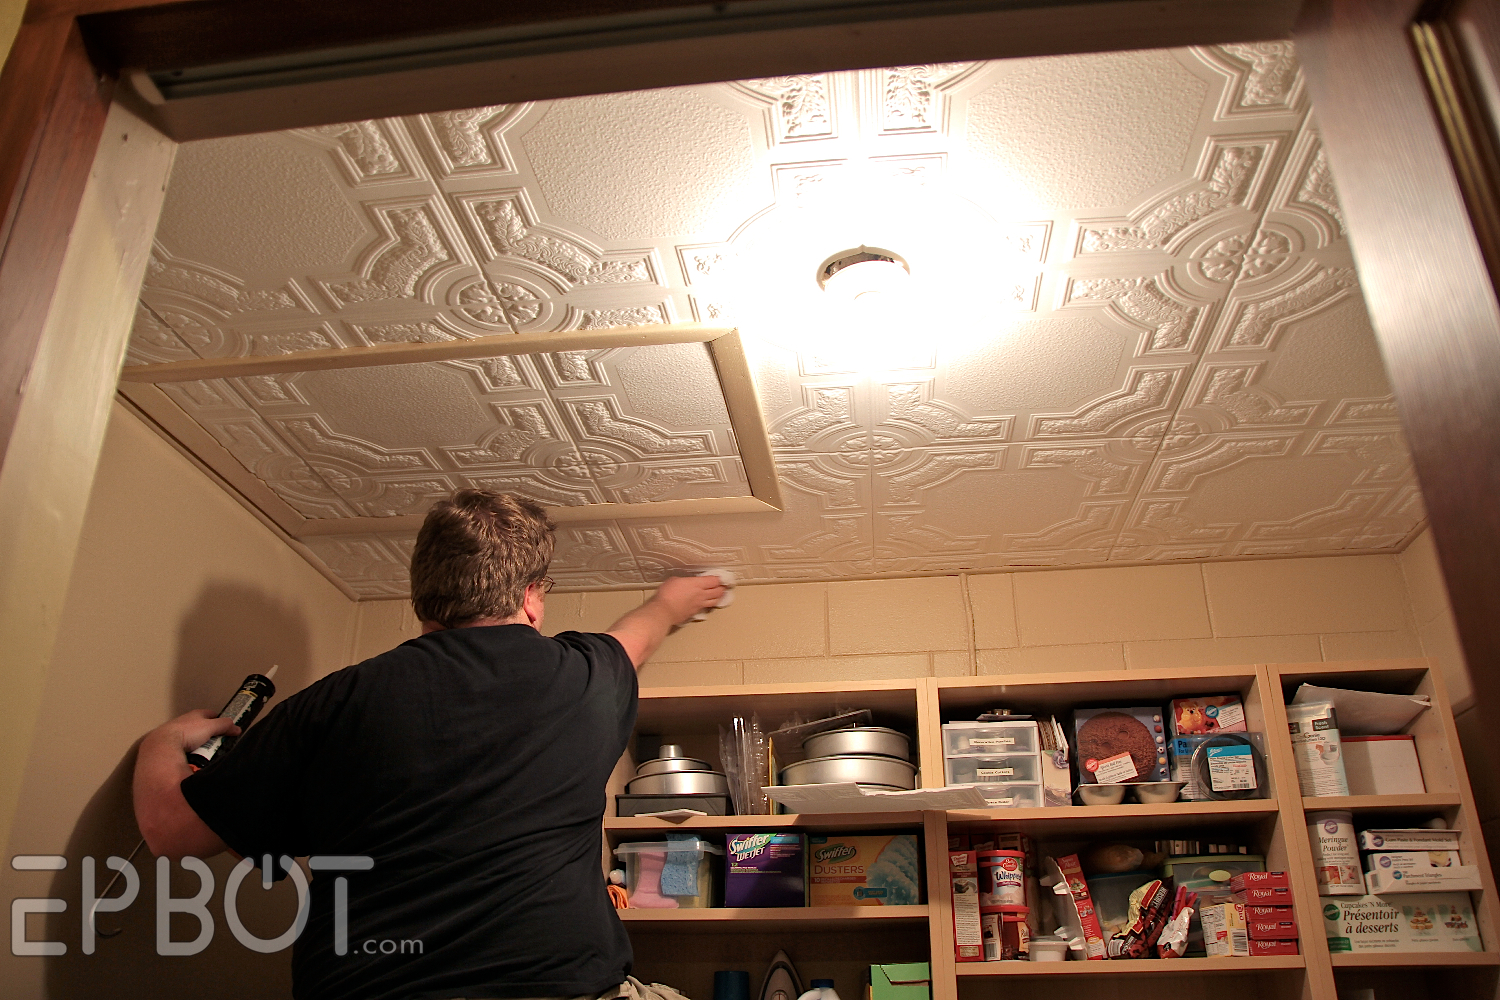 ... odd corners, John was able to finish the ceiling in just a few hours